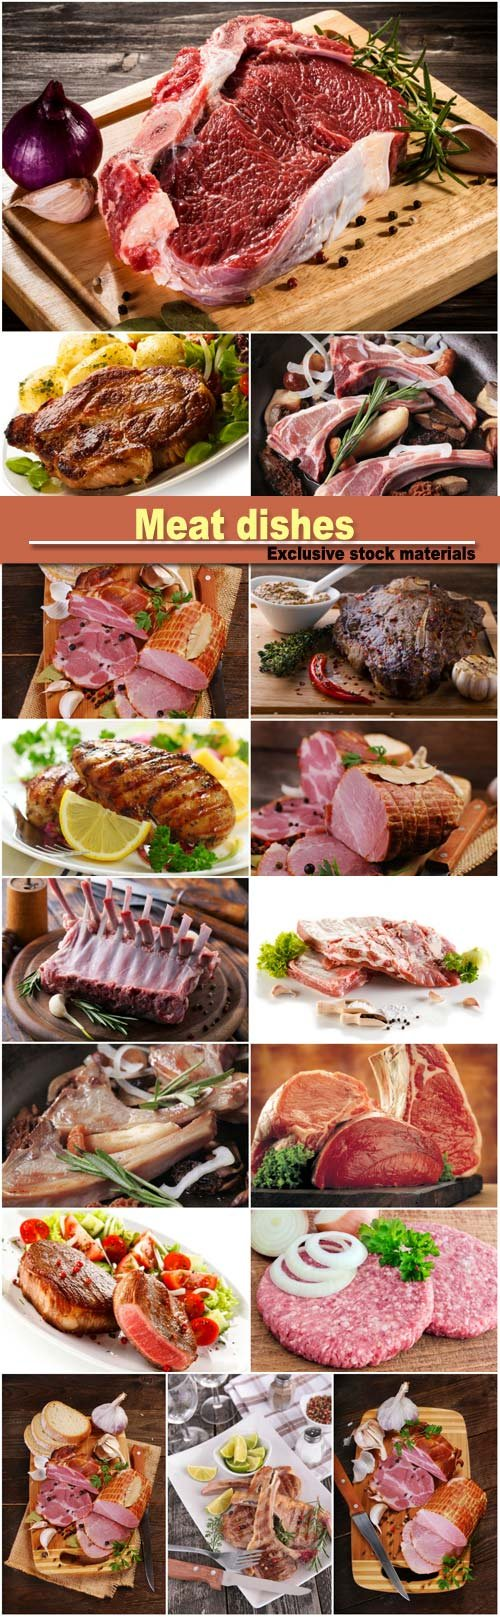 Meat dishes, lamb chops, smoked ham, lamb ribs with spices and herbs